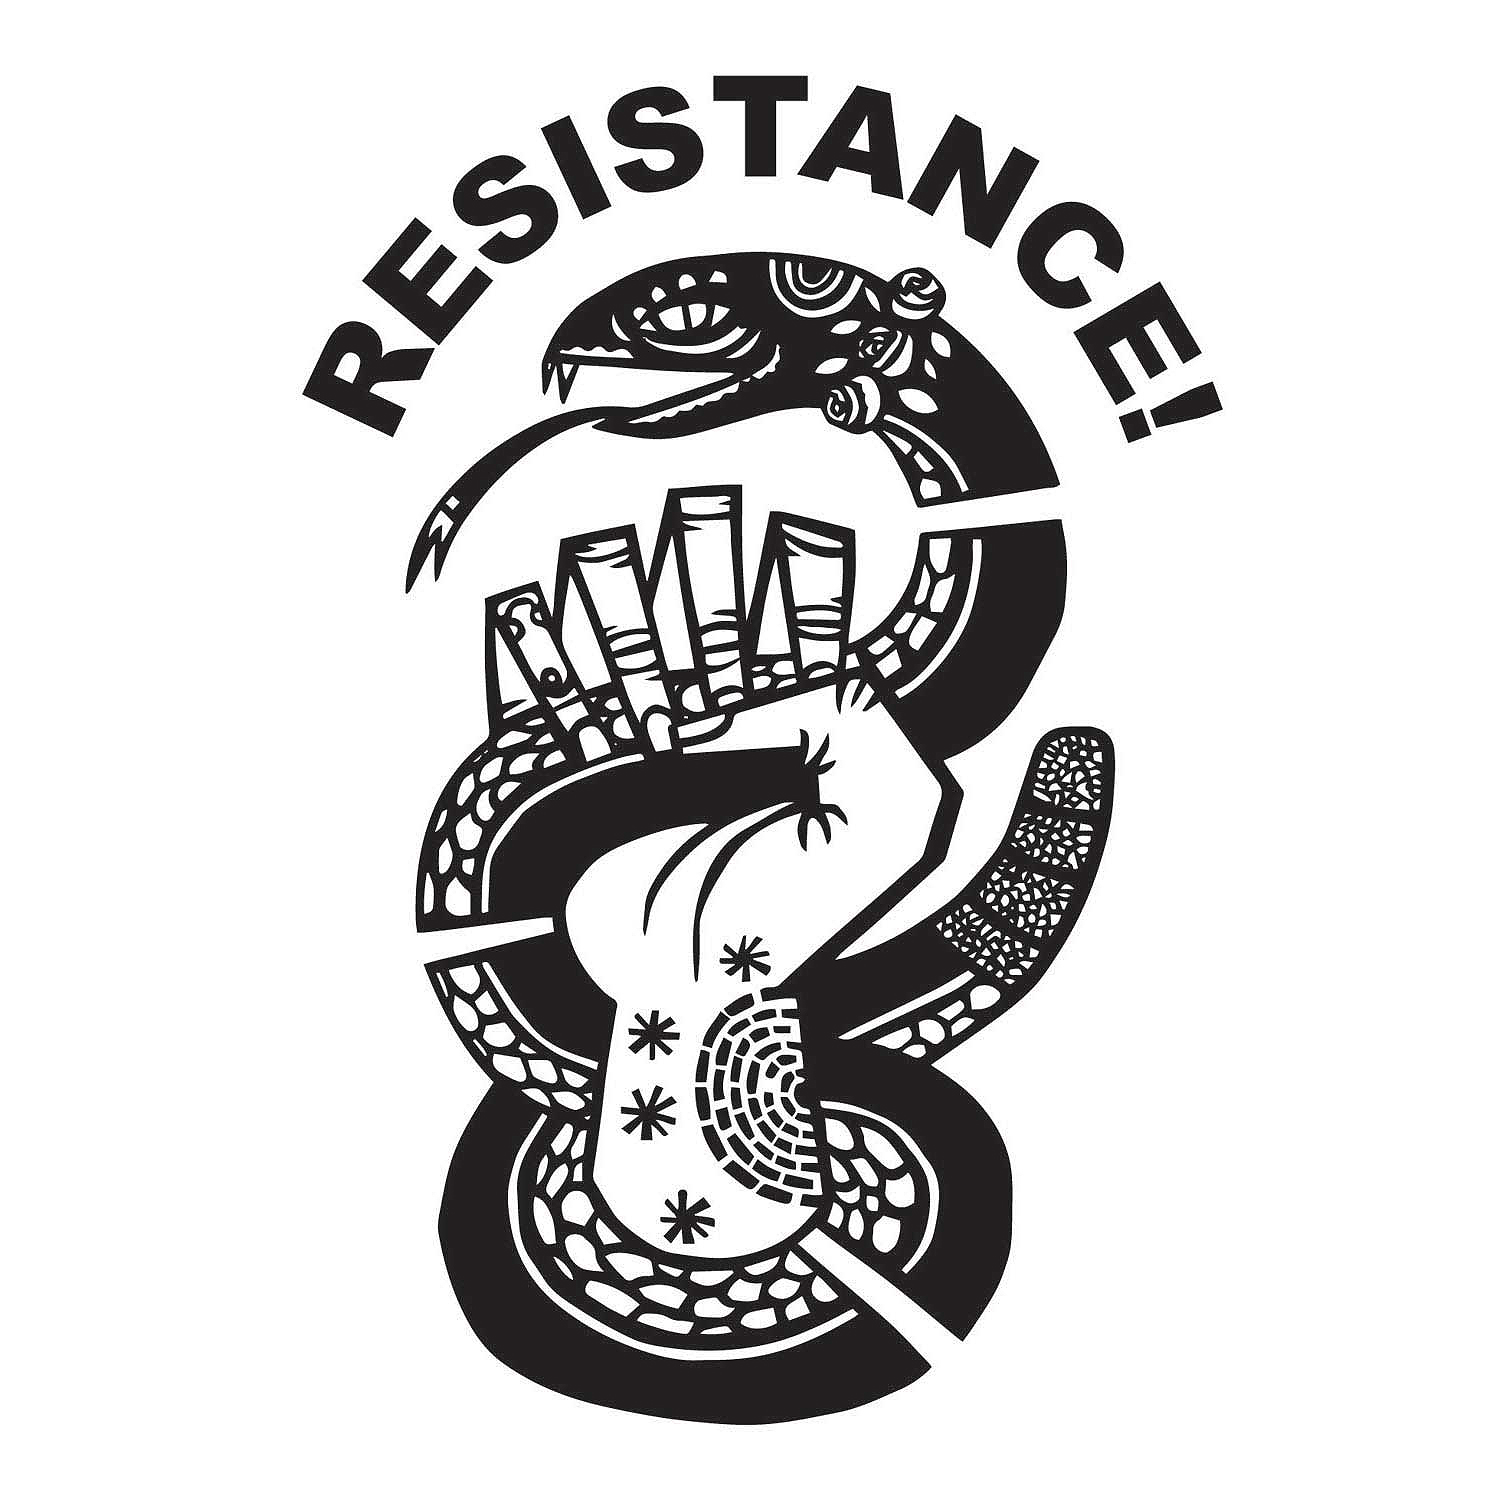 resistance-1